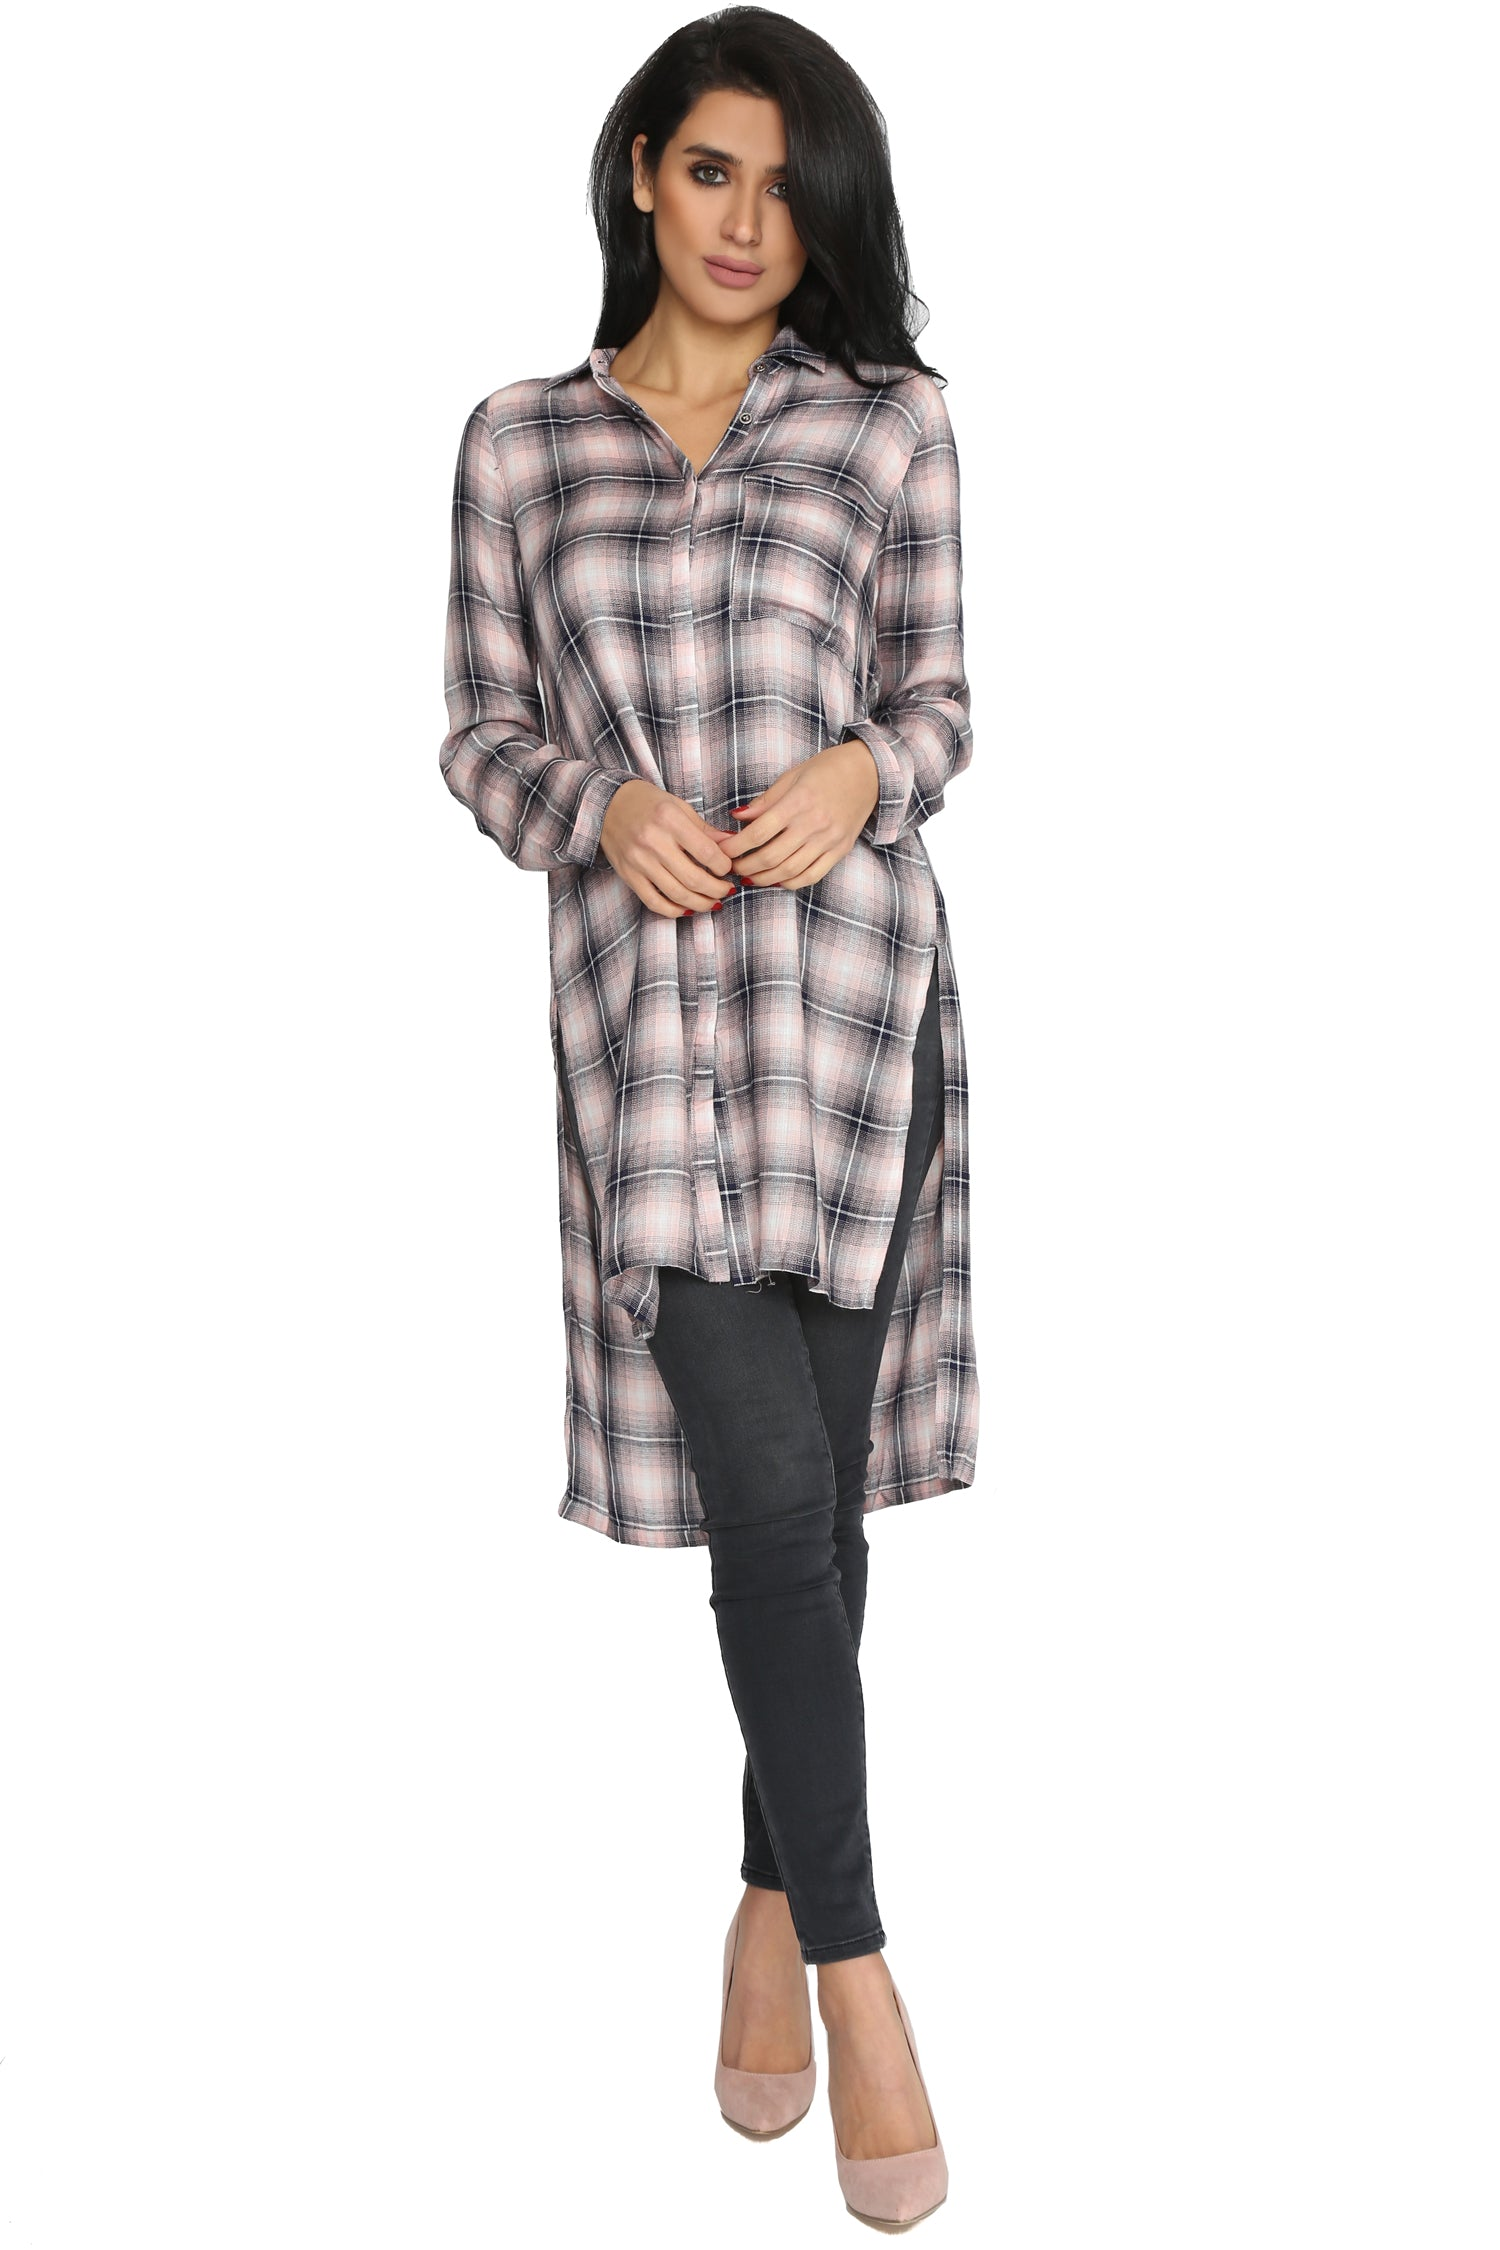 BY THE FIREPLACE FLANNEL TUNIC